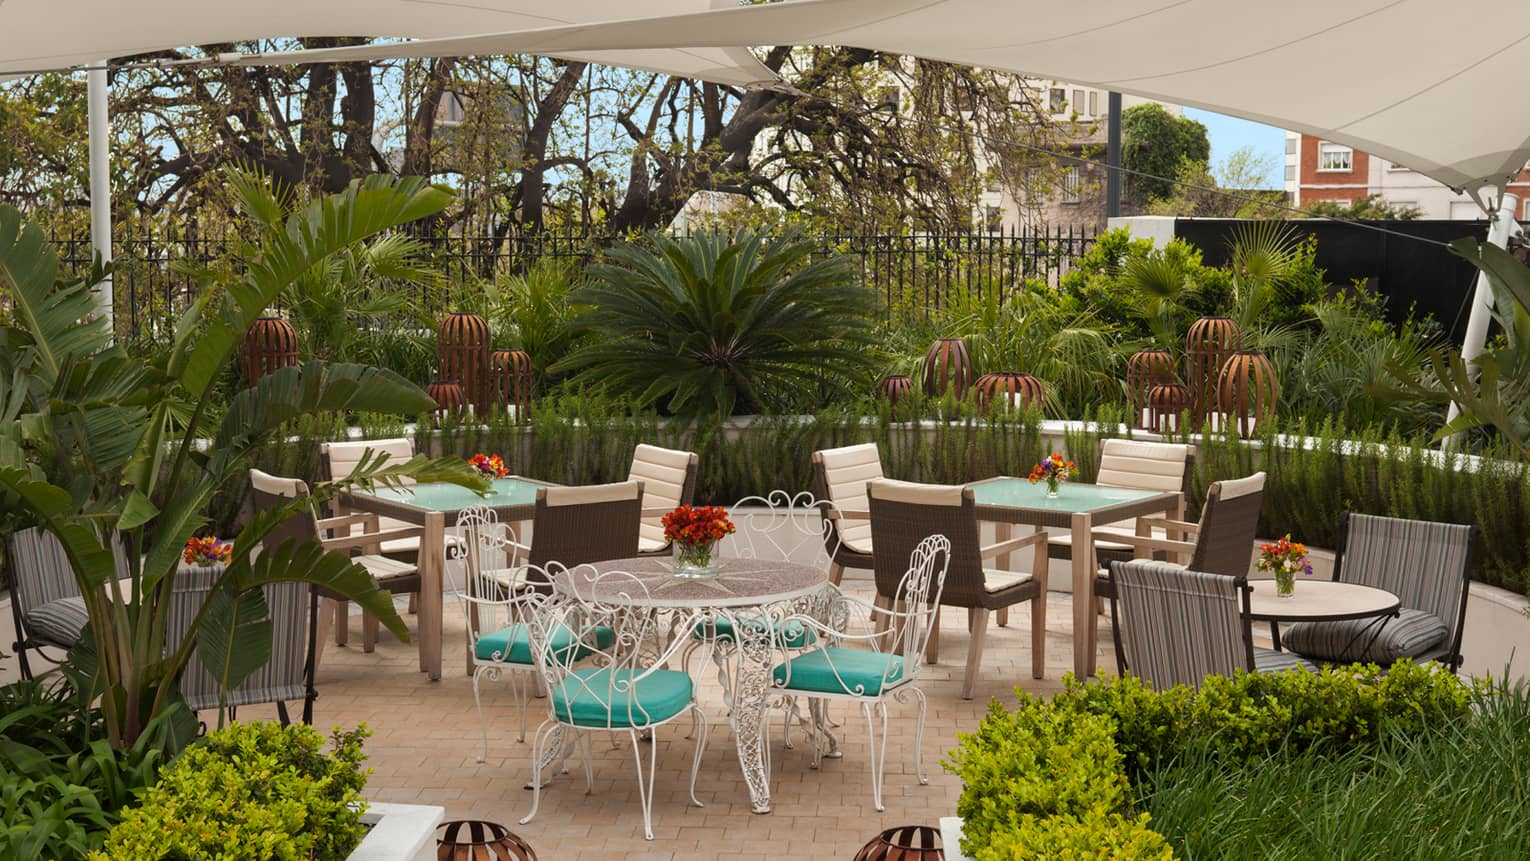 Outdoor patio dining tables with white chairs, teal cushions, surrounded by tropical gardens